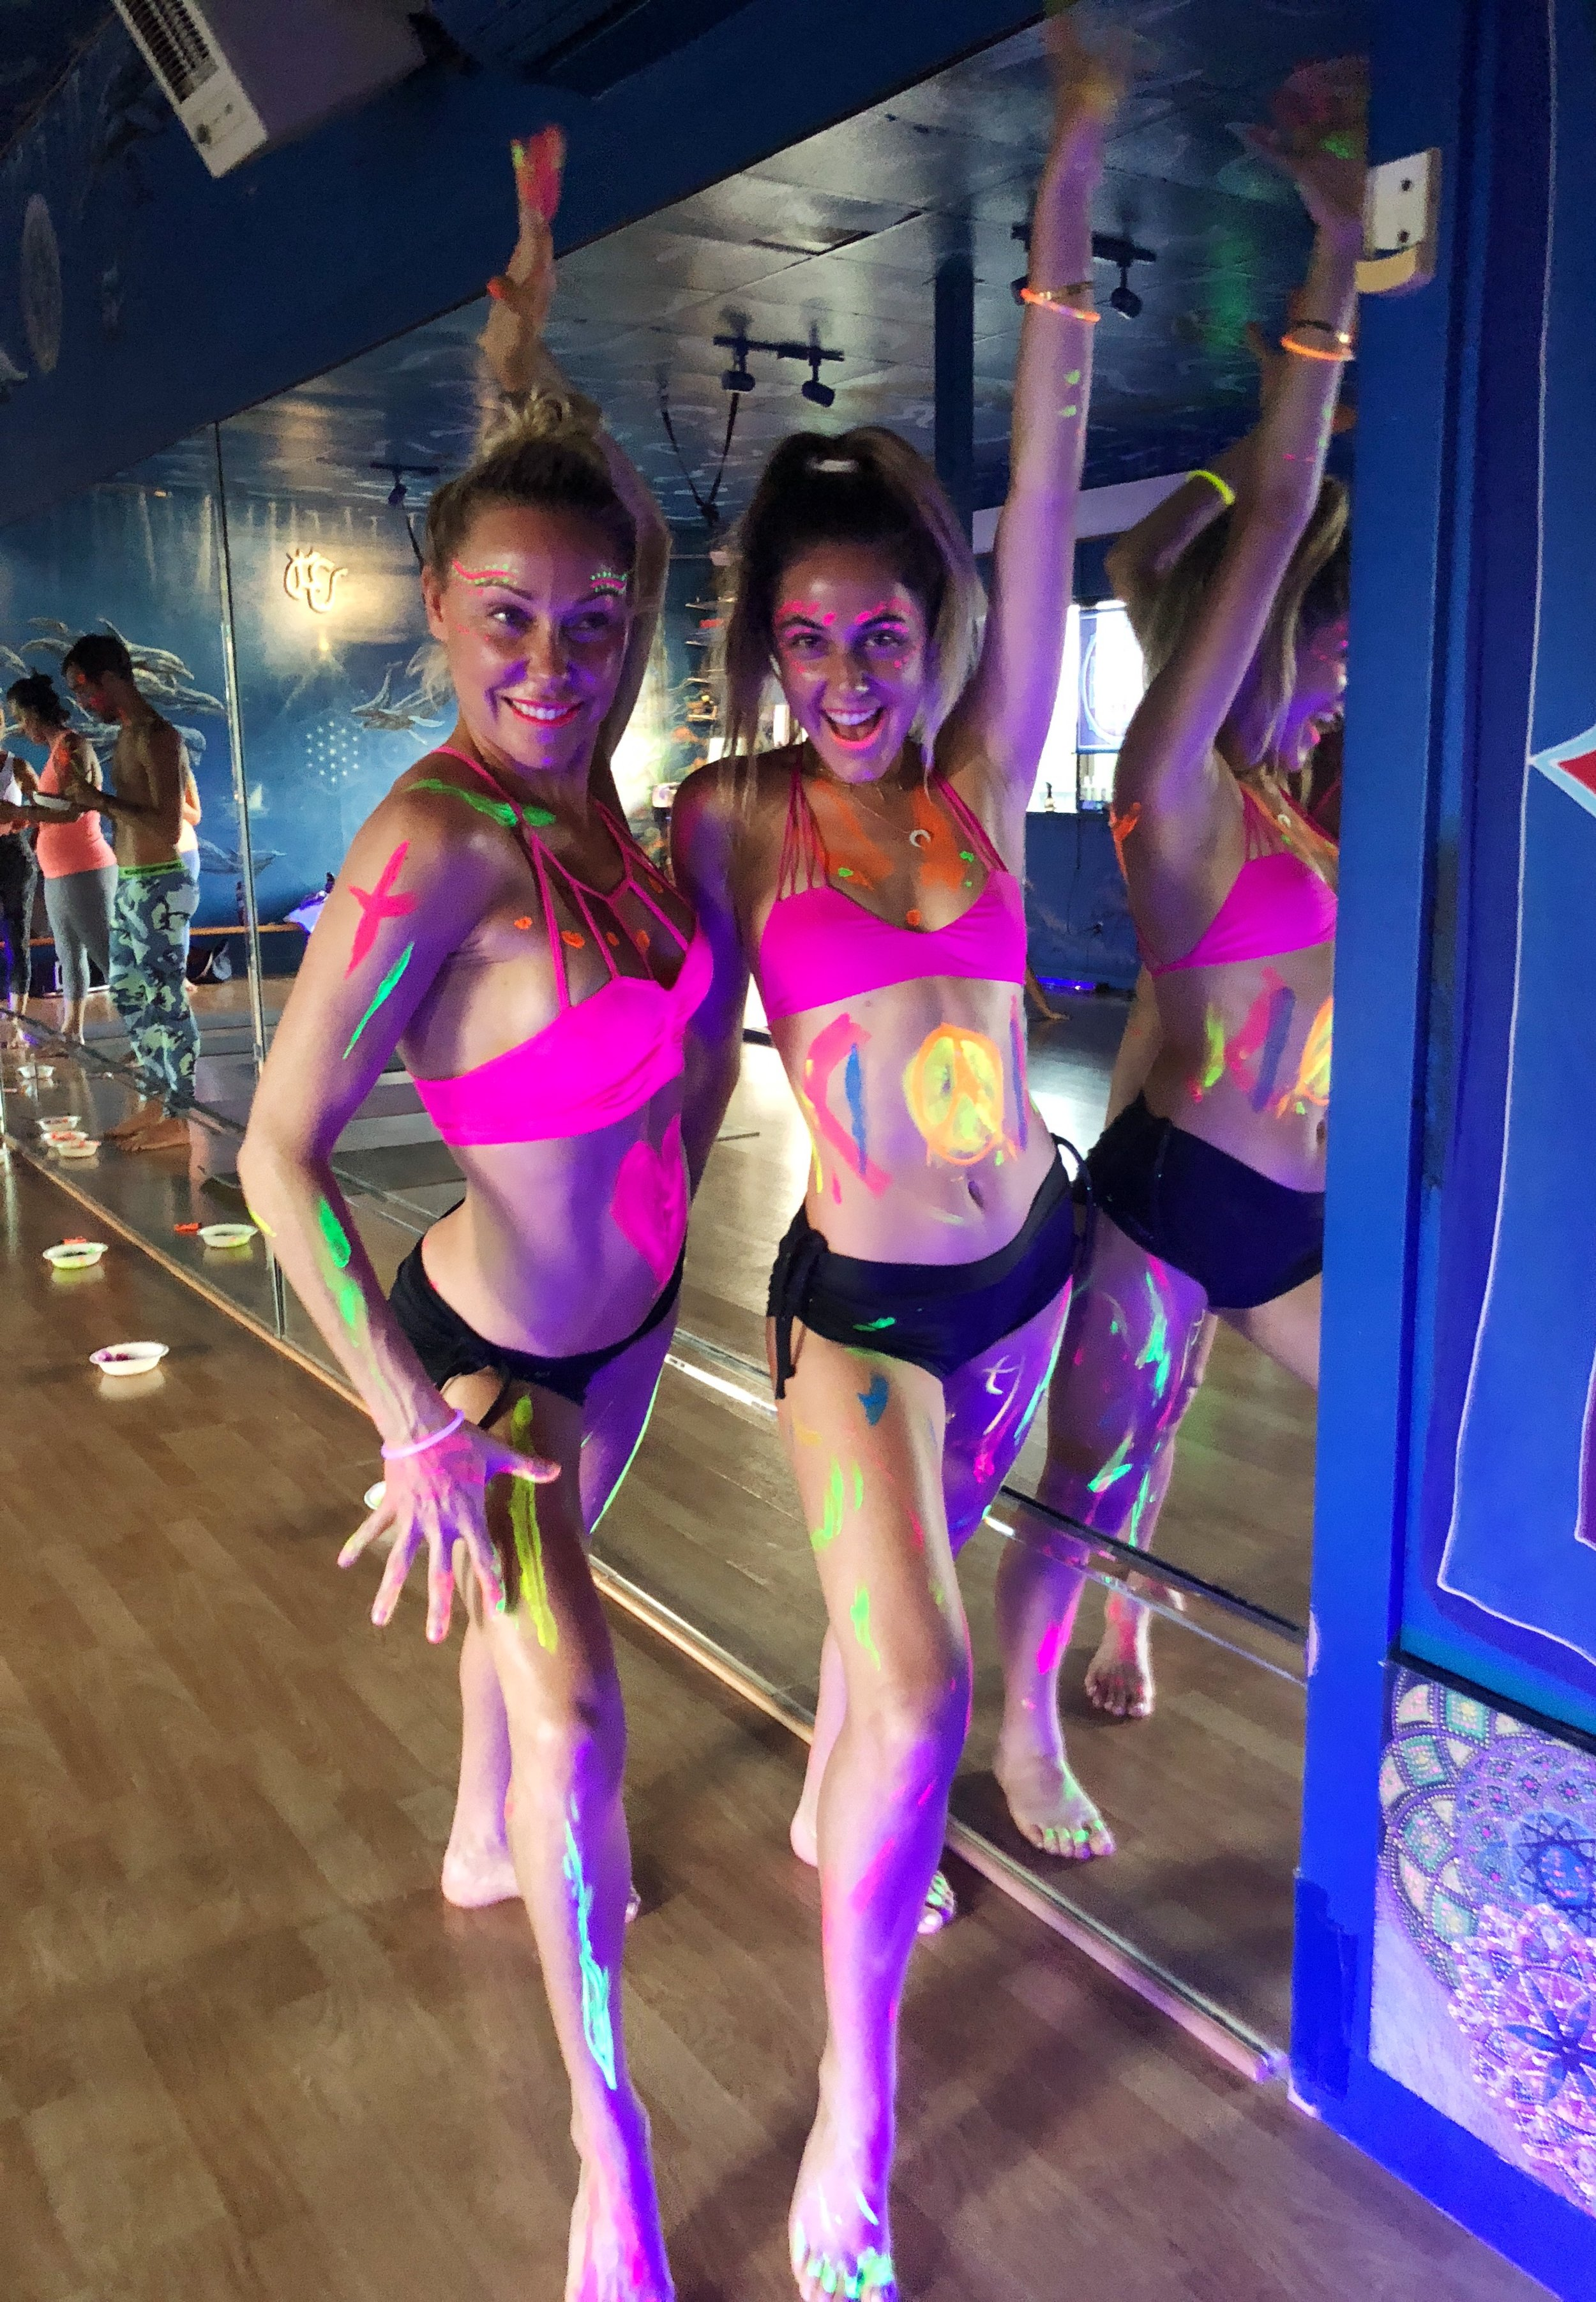 This is my mom and I at Maui Hot Yoga. They had an insane neon black light yoga class!